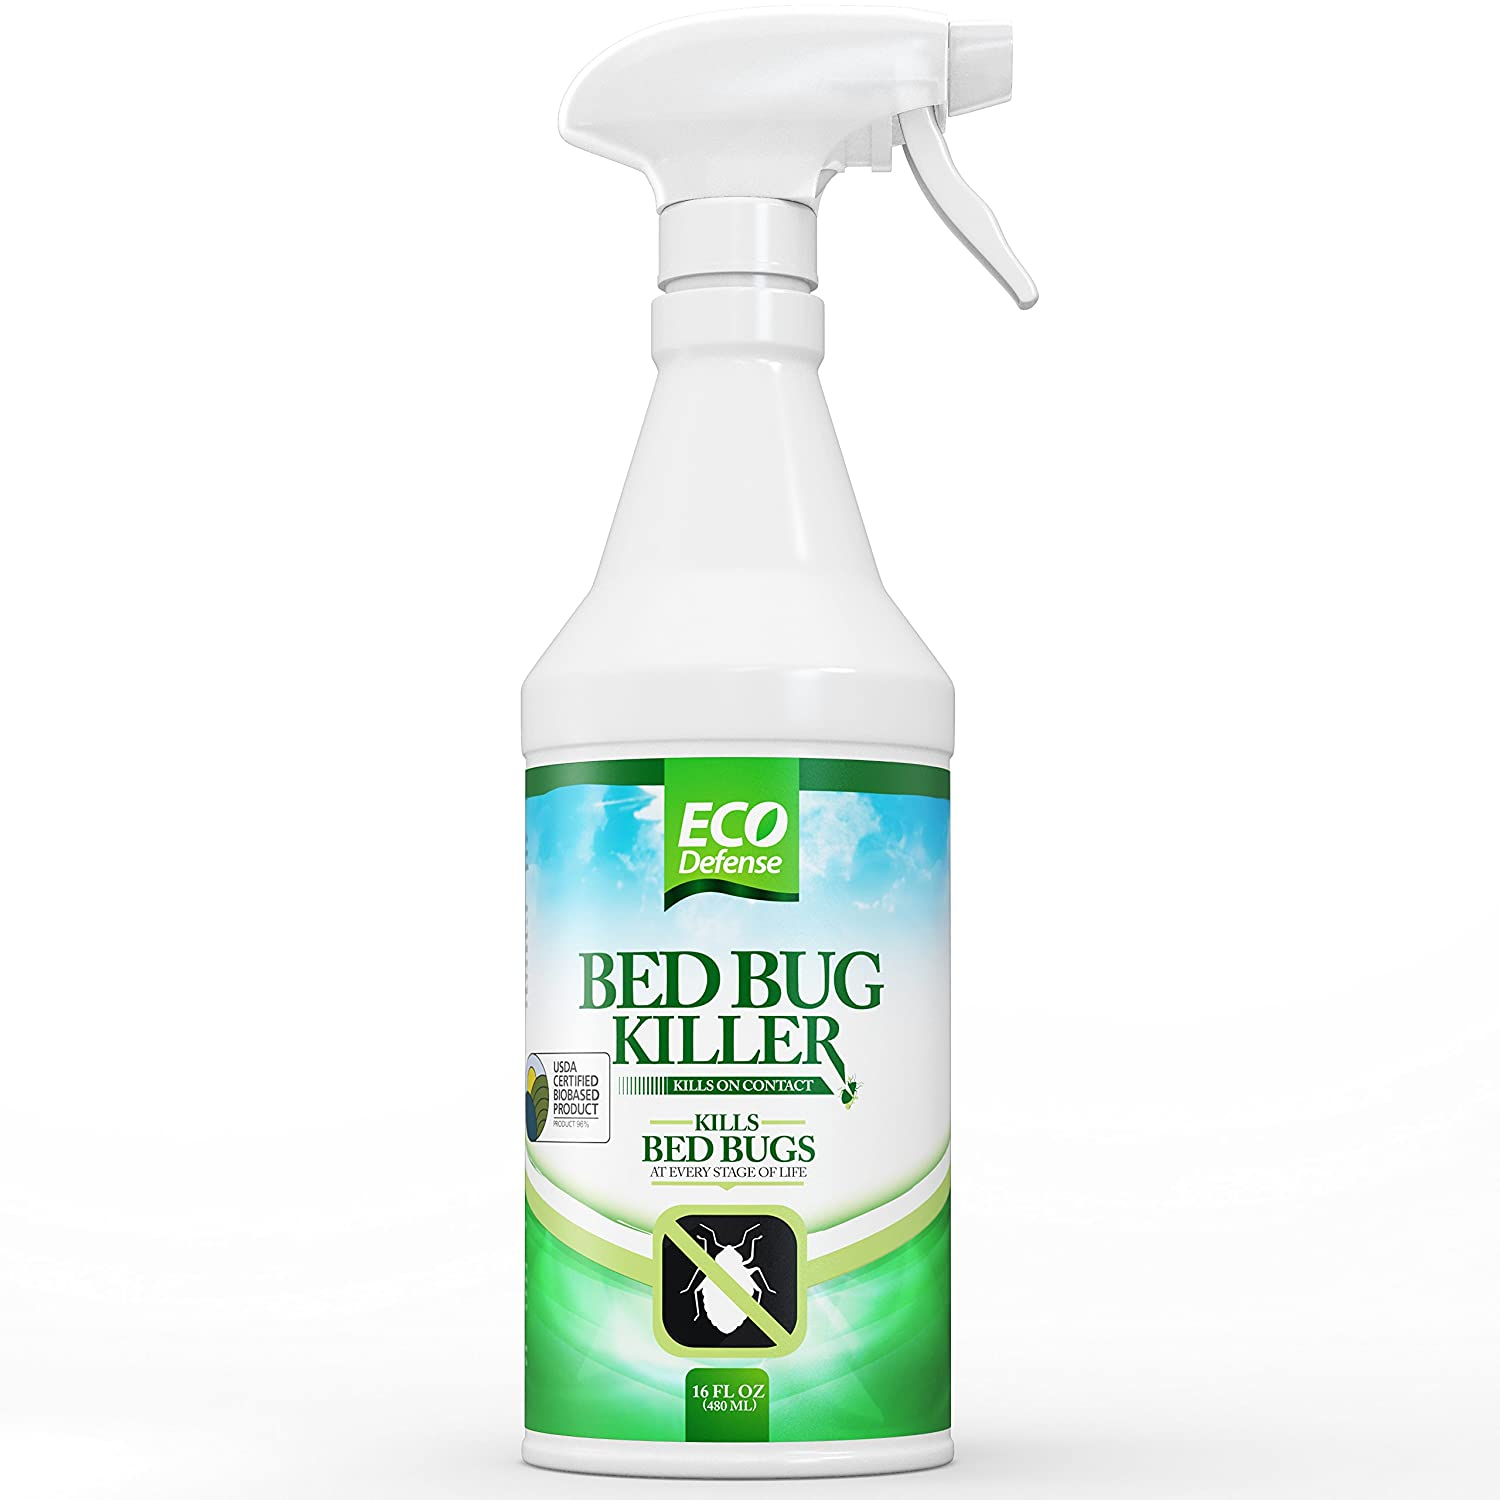 Eco Defense Bed Bug Killer, Natural Organic Formula Fastest, 16 oz